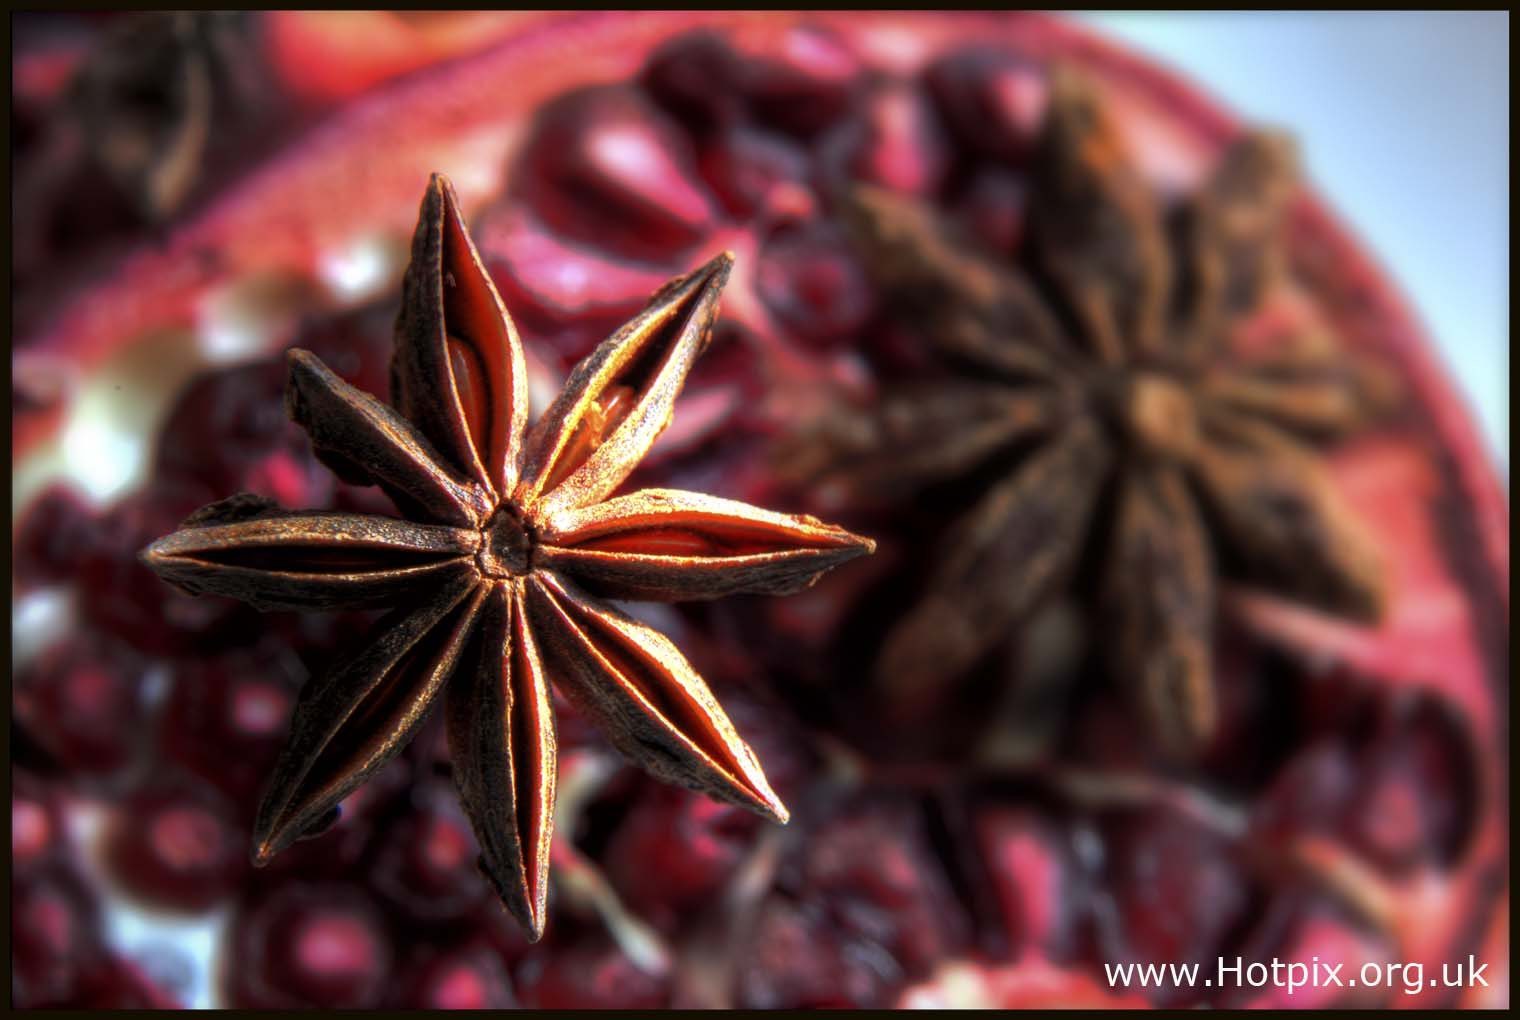 star,anise,anised,flower,dried,spice,brown,tamarind,red,12,twelve,seeds,macro,tubes,close,up,closeup,lens,small,nature,natural,food,ingredient,kitchen,tonysmith,tony,smith,hotpix,hotpix.org.uk,hotpixuk,365project,plant,bloom,stillife,stilllife,still,life,art,arty,sex,sexy